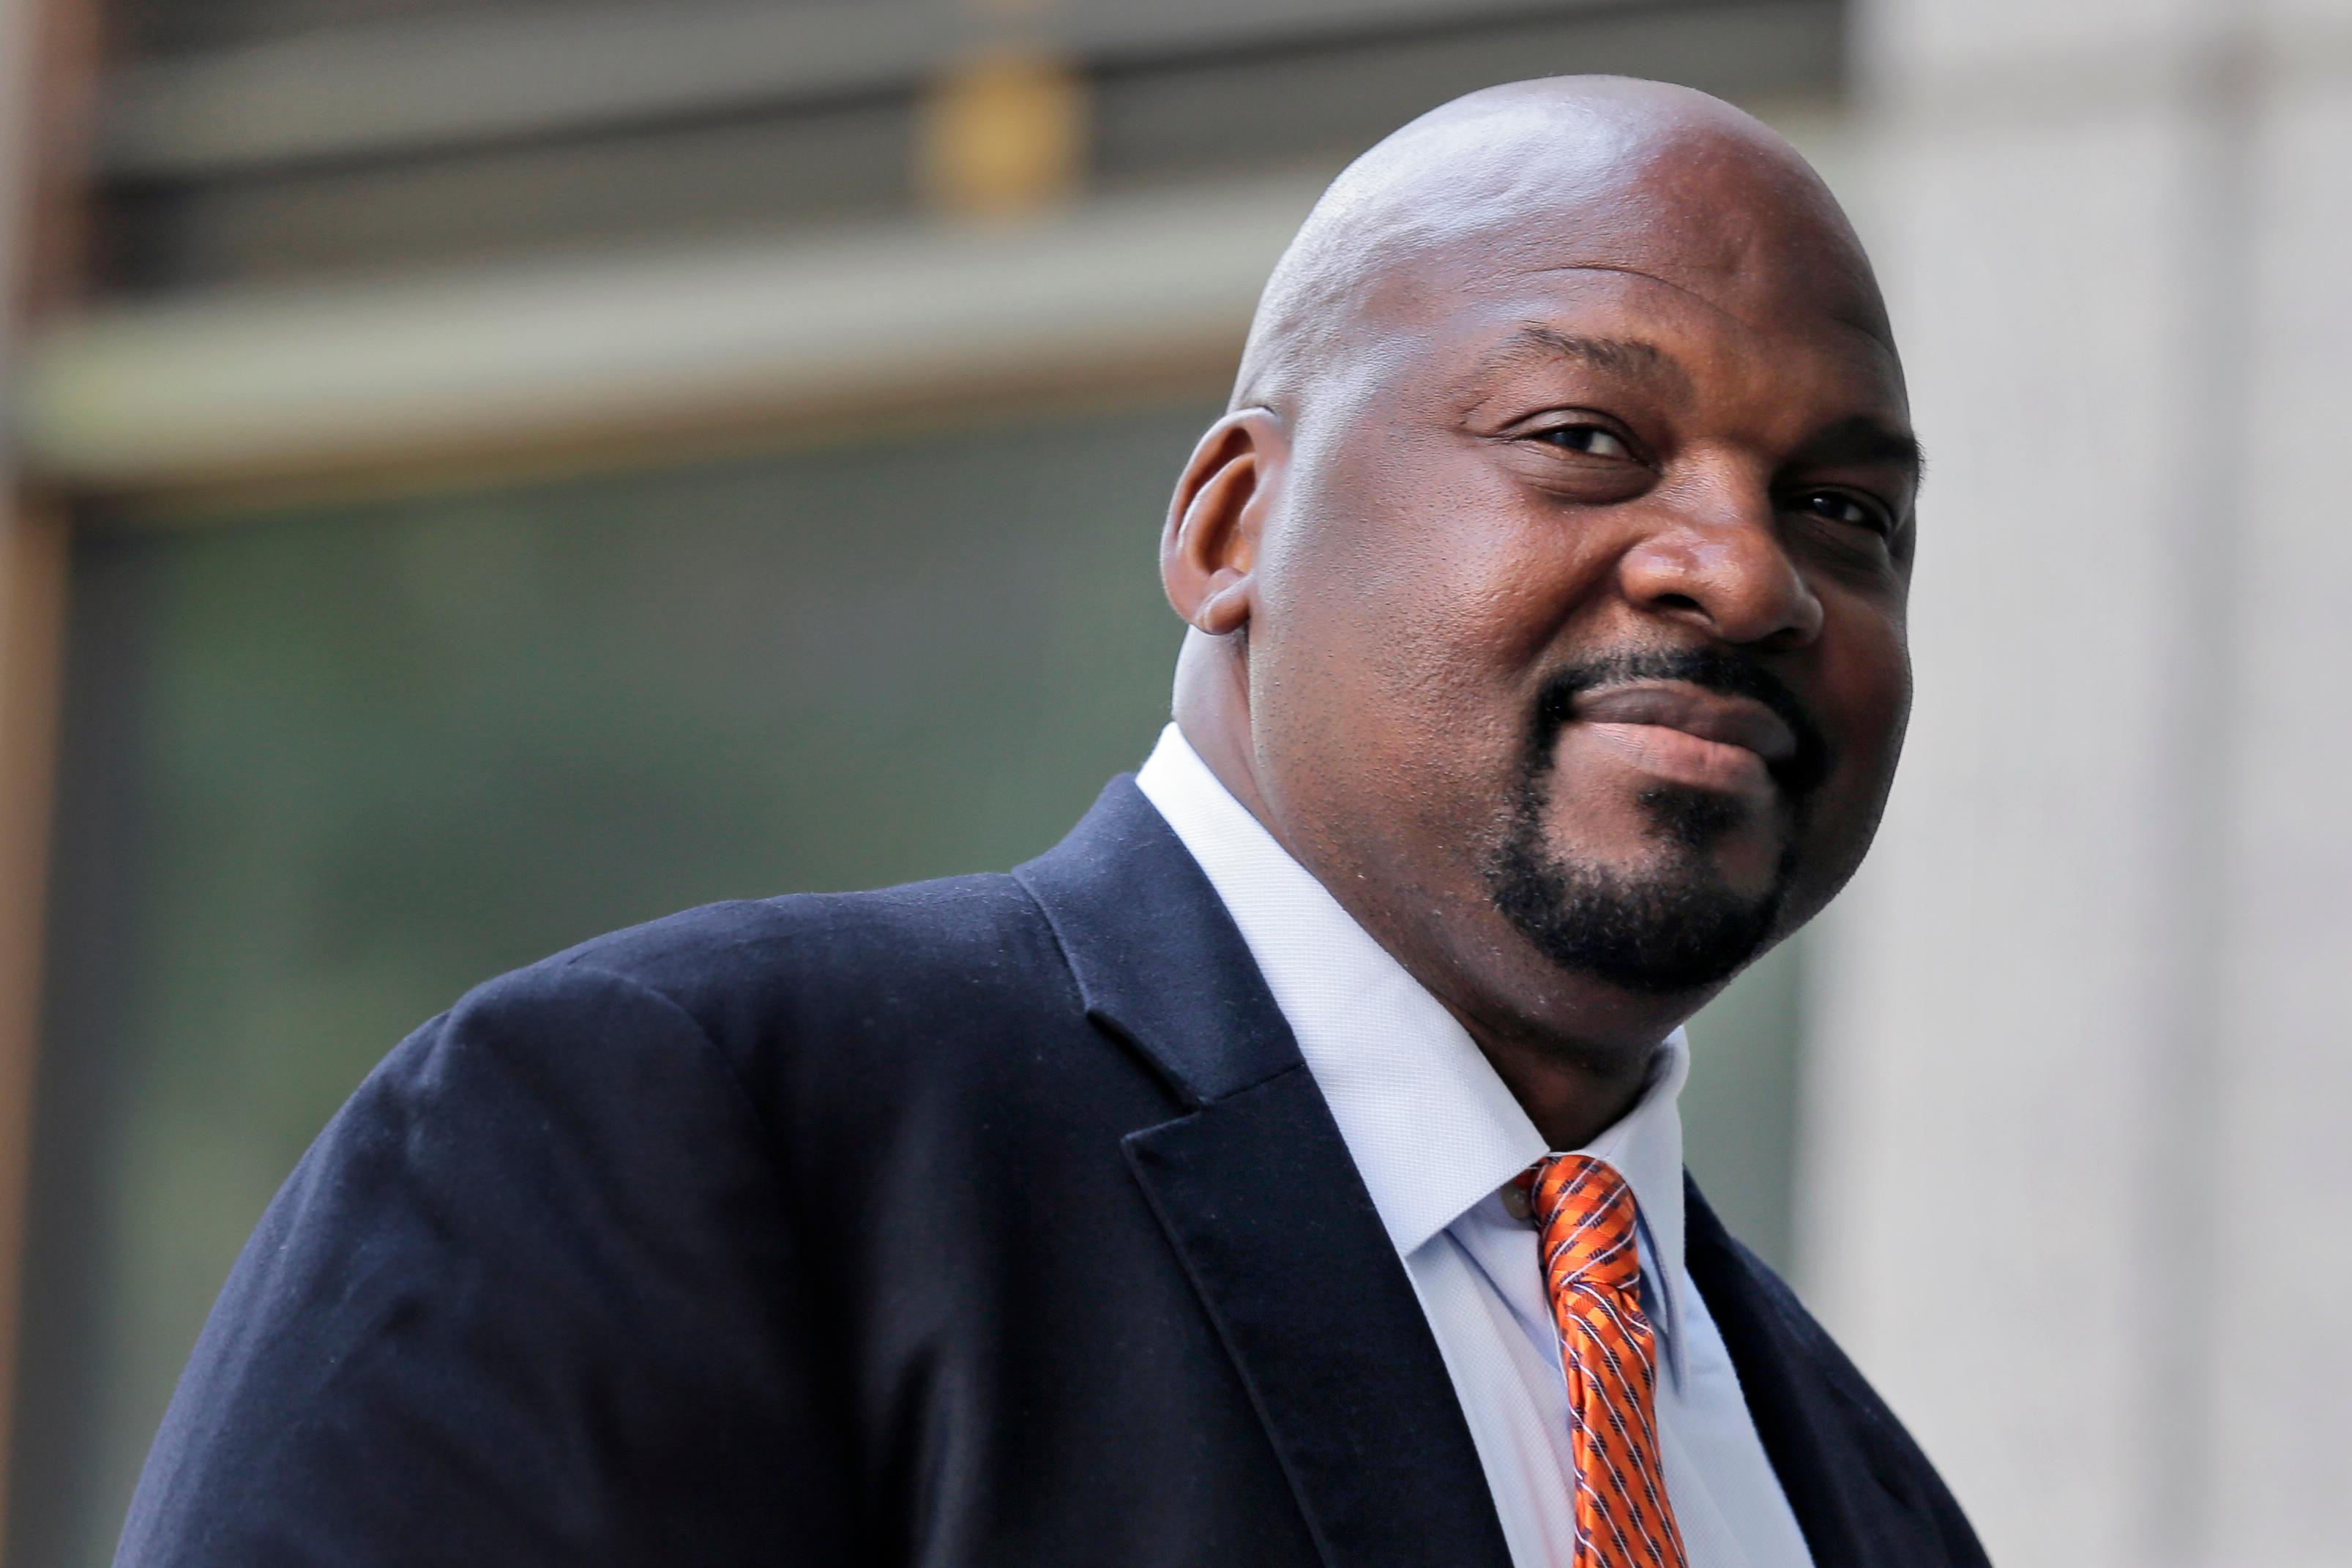 Former Auburn University assistant basketball coach Chuck Person arrives at federal court in New York for sentencing in a bribery scandal that has touched some of the biggest schools in college basketball, Wednesday, July 17, 2019. (AP Photo/Seth Wenig)